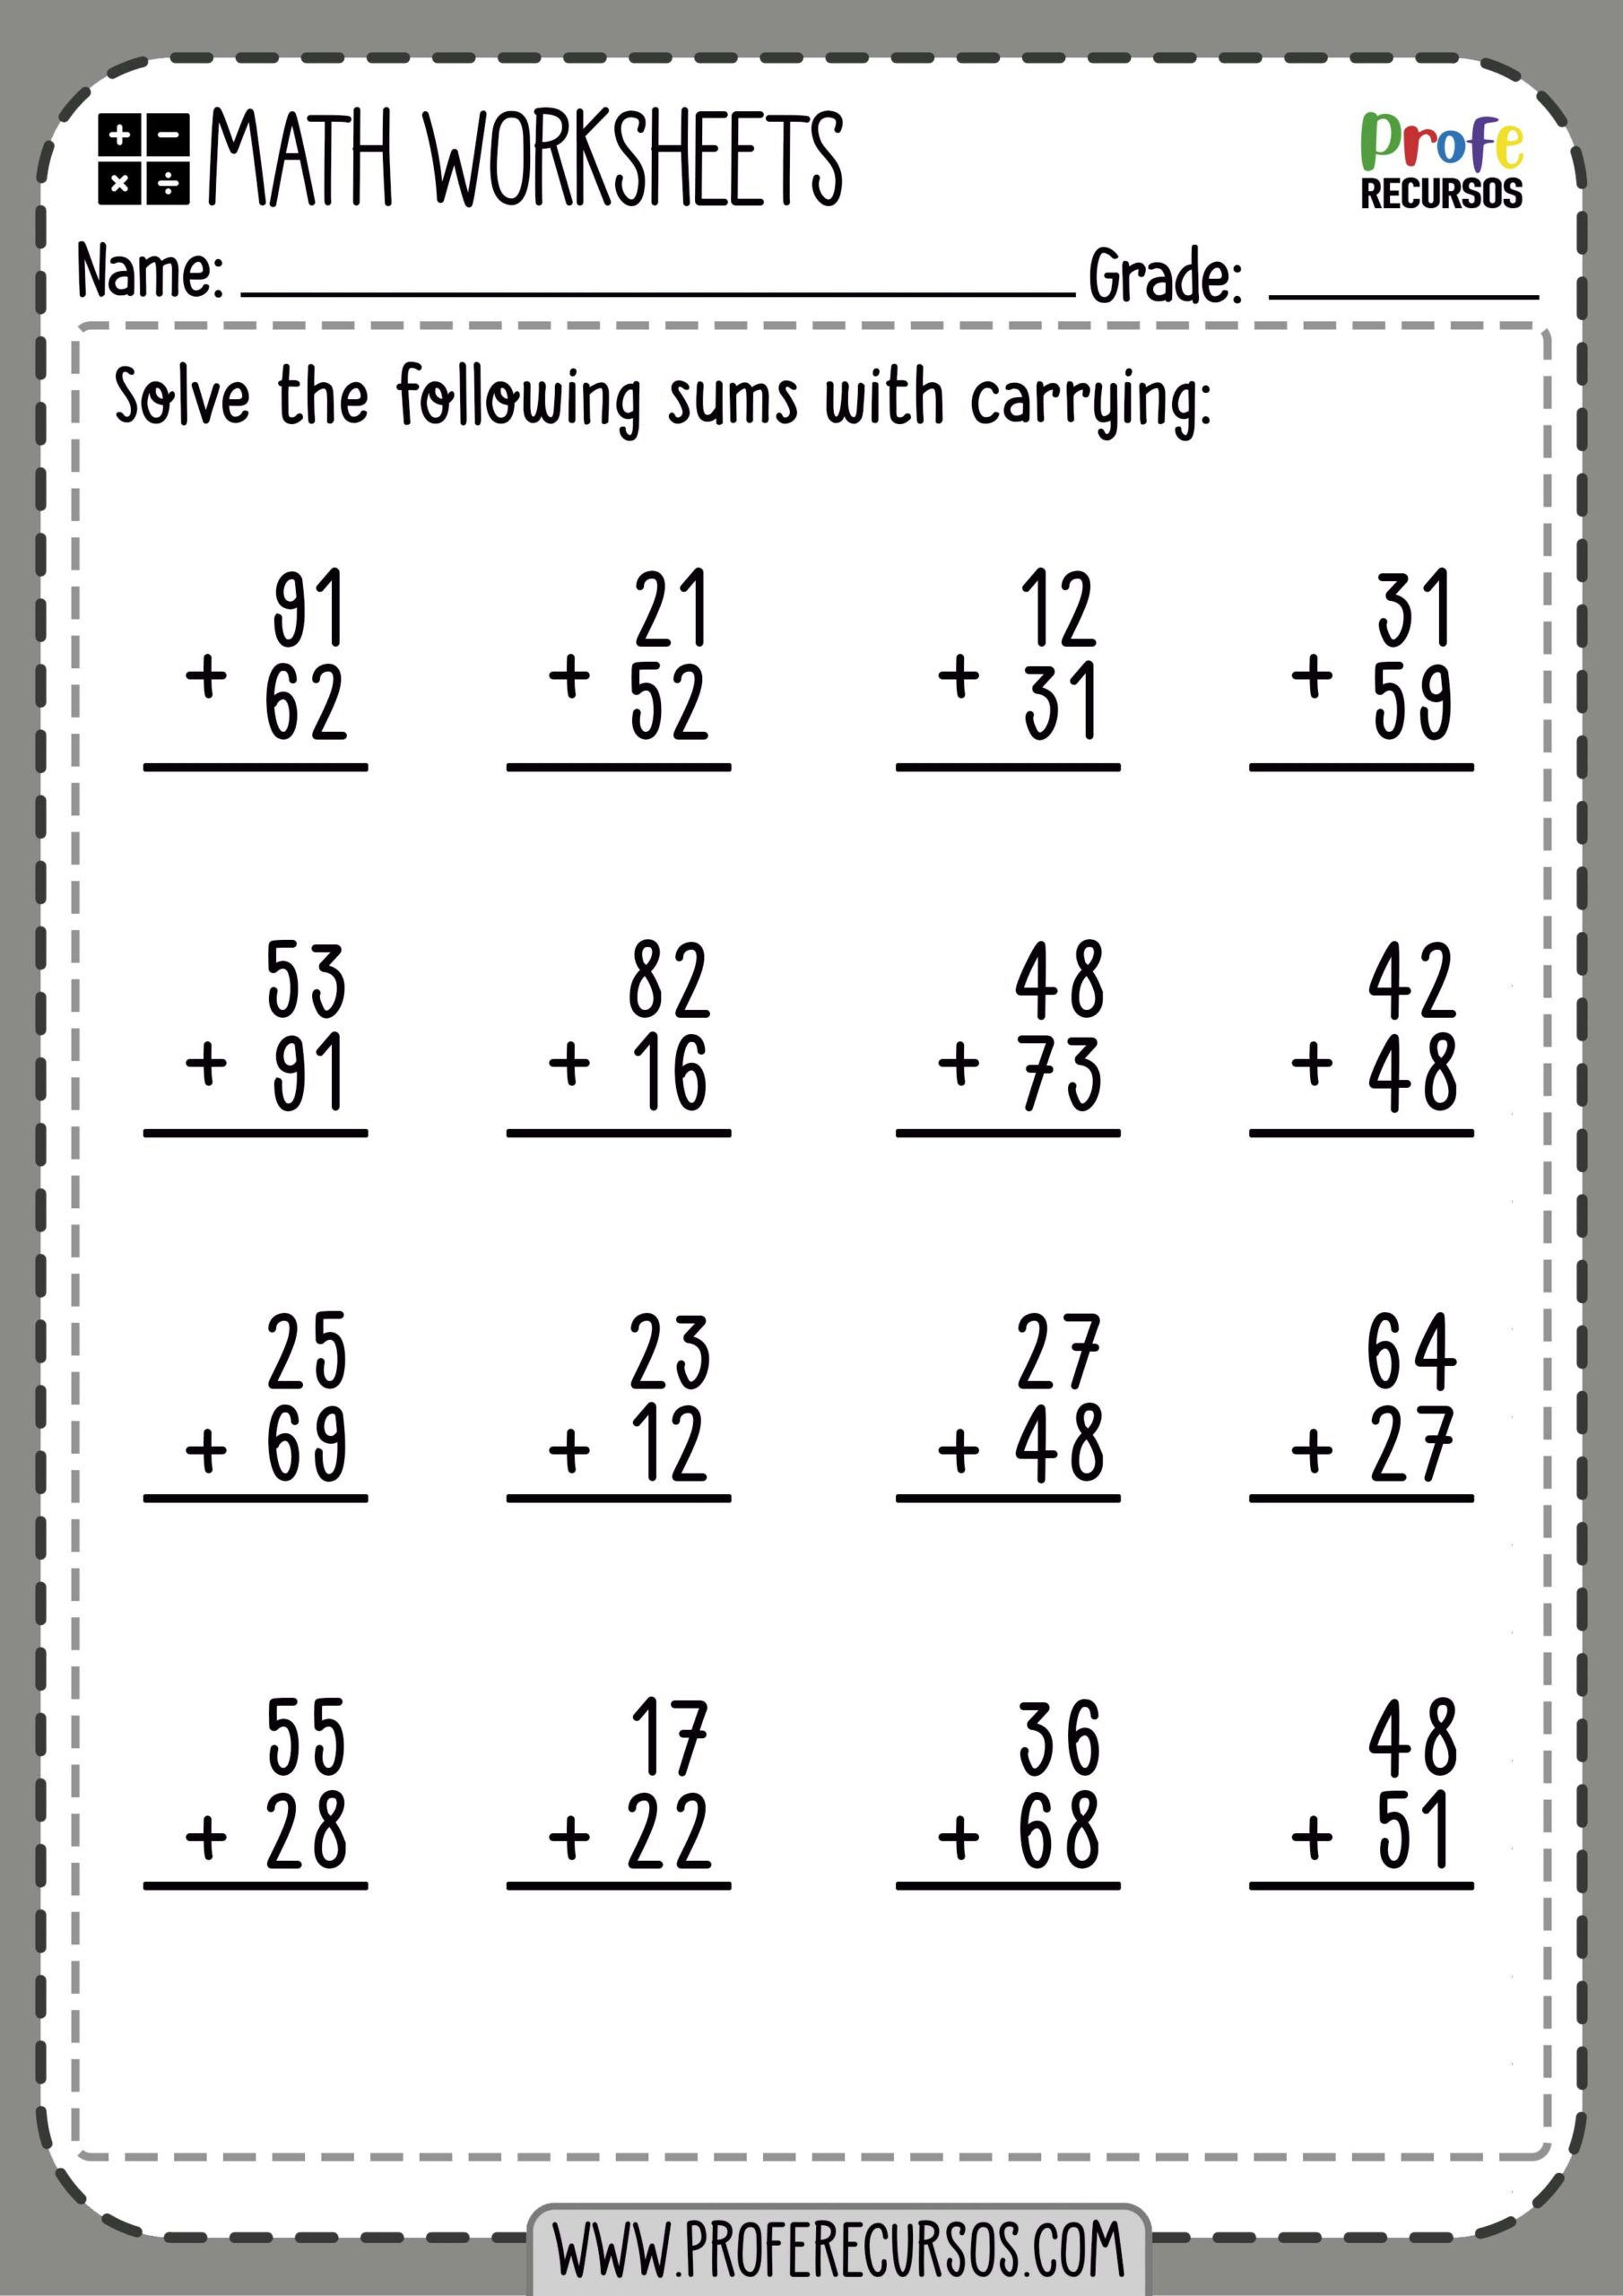 hight resolution of 2-Digit Addition with Carrying   Math Worksheets